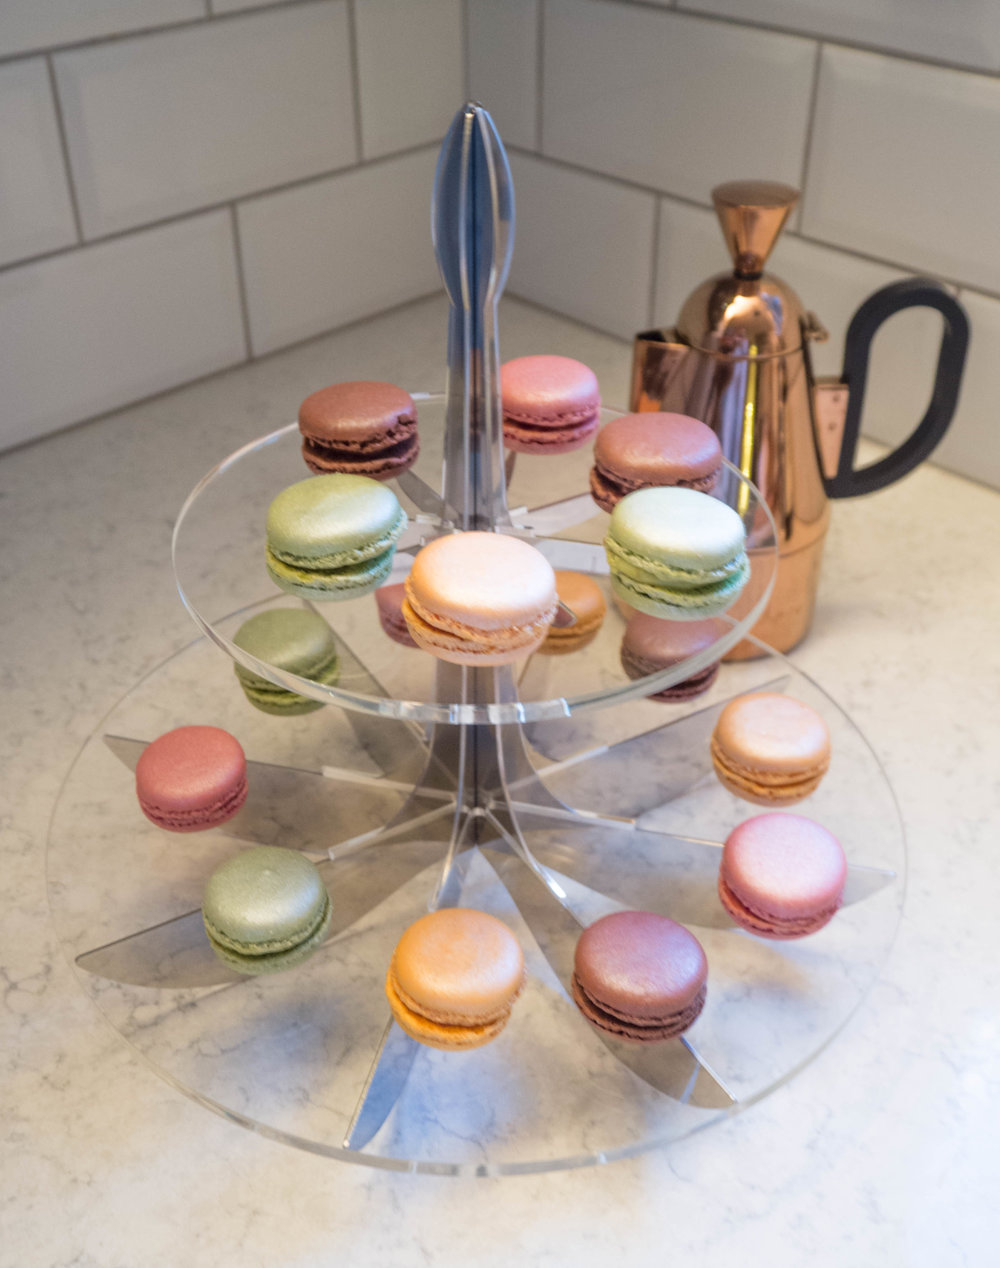 The be&liv lily cake stand